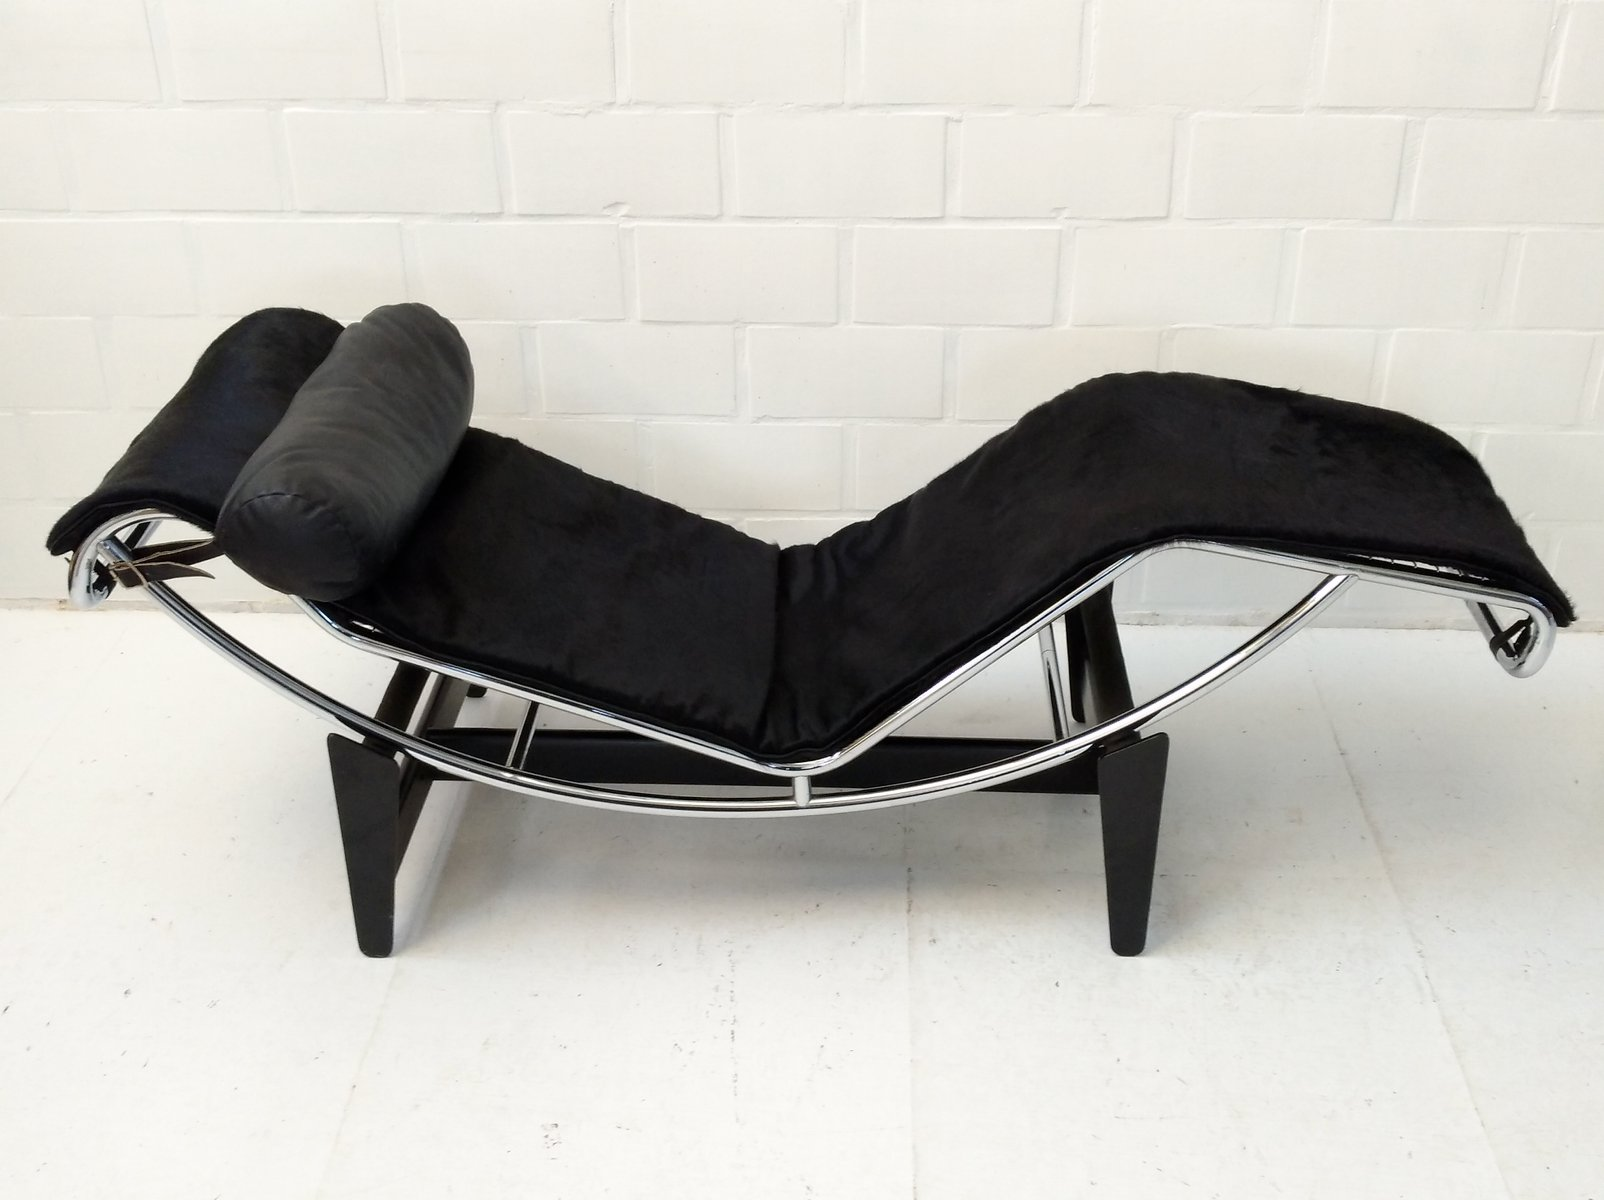 Early lc4 chaise longue by le corbusier perriand for Chaise longue le corbusier vache